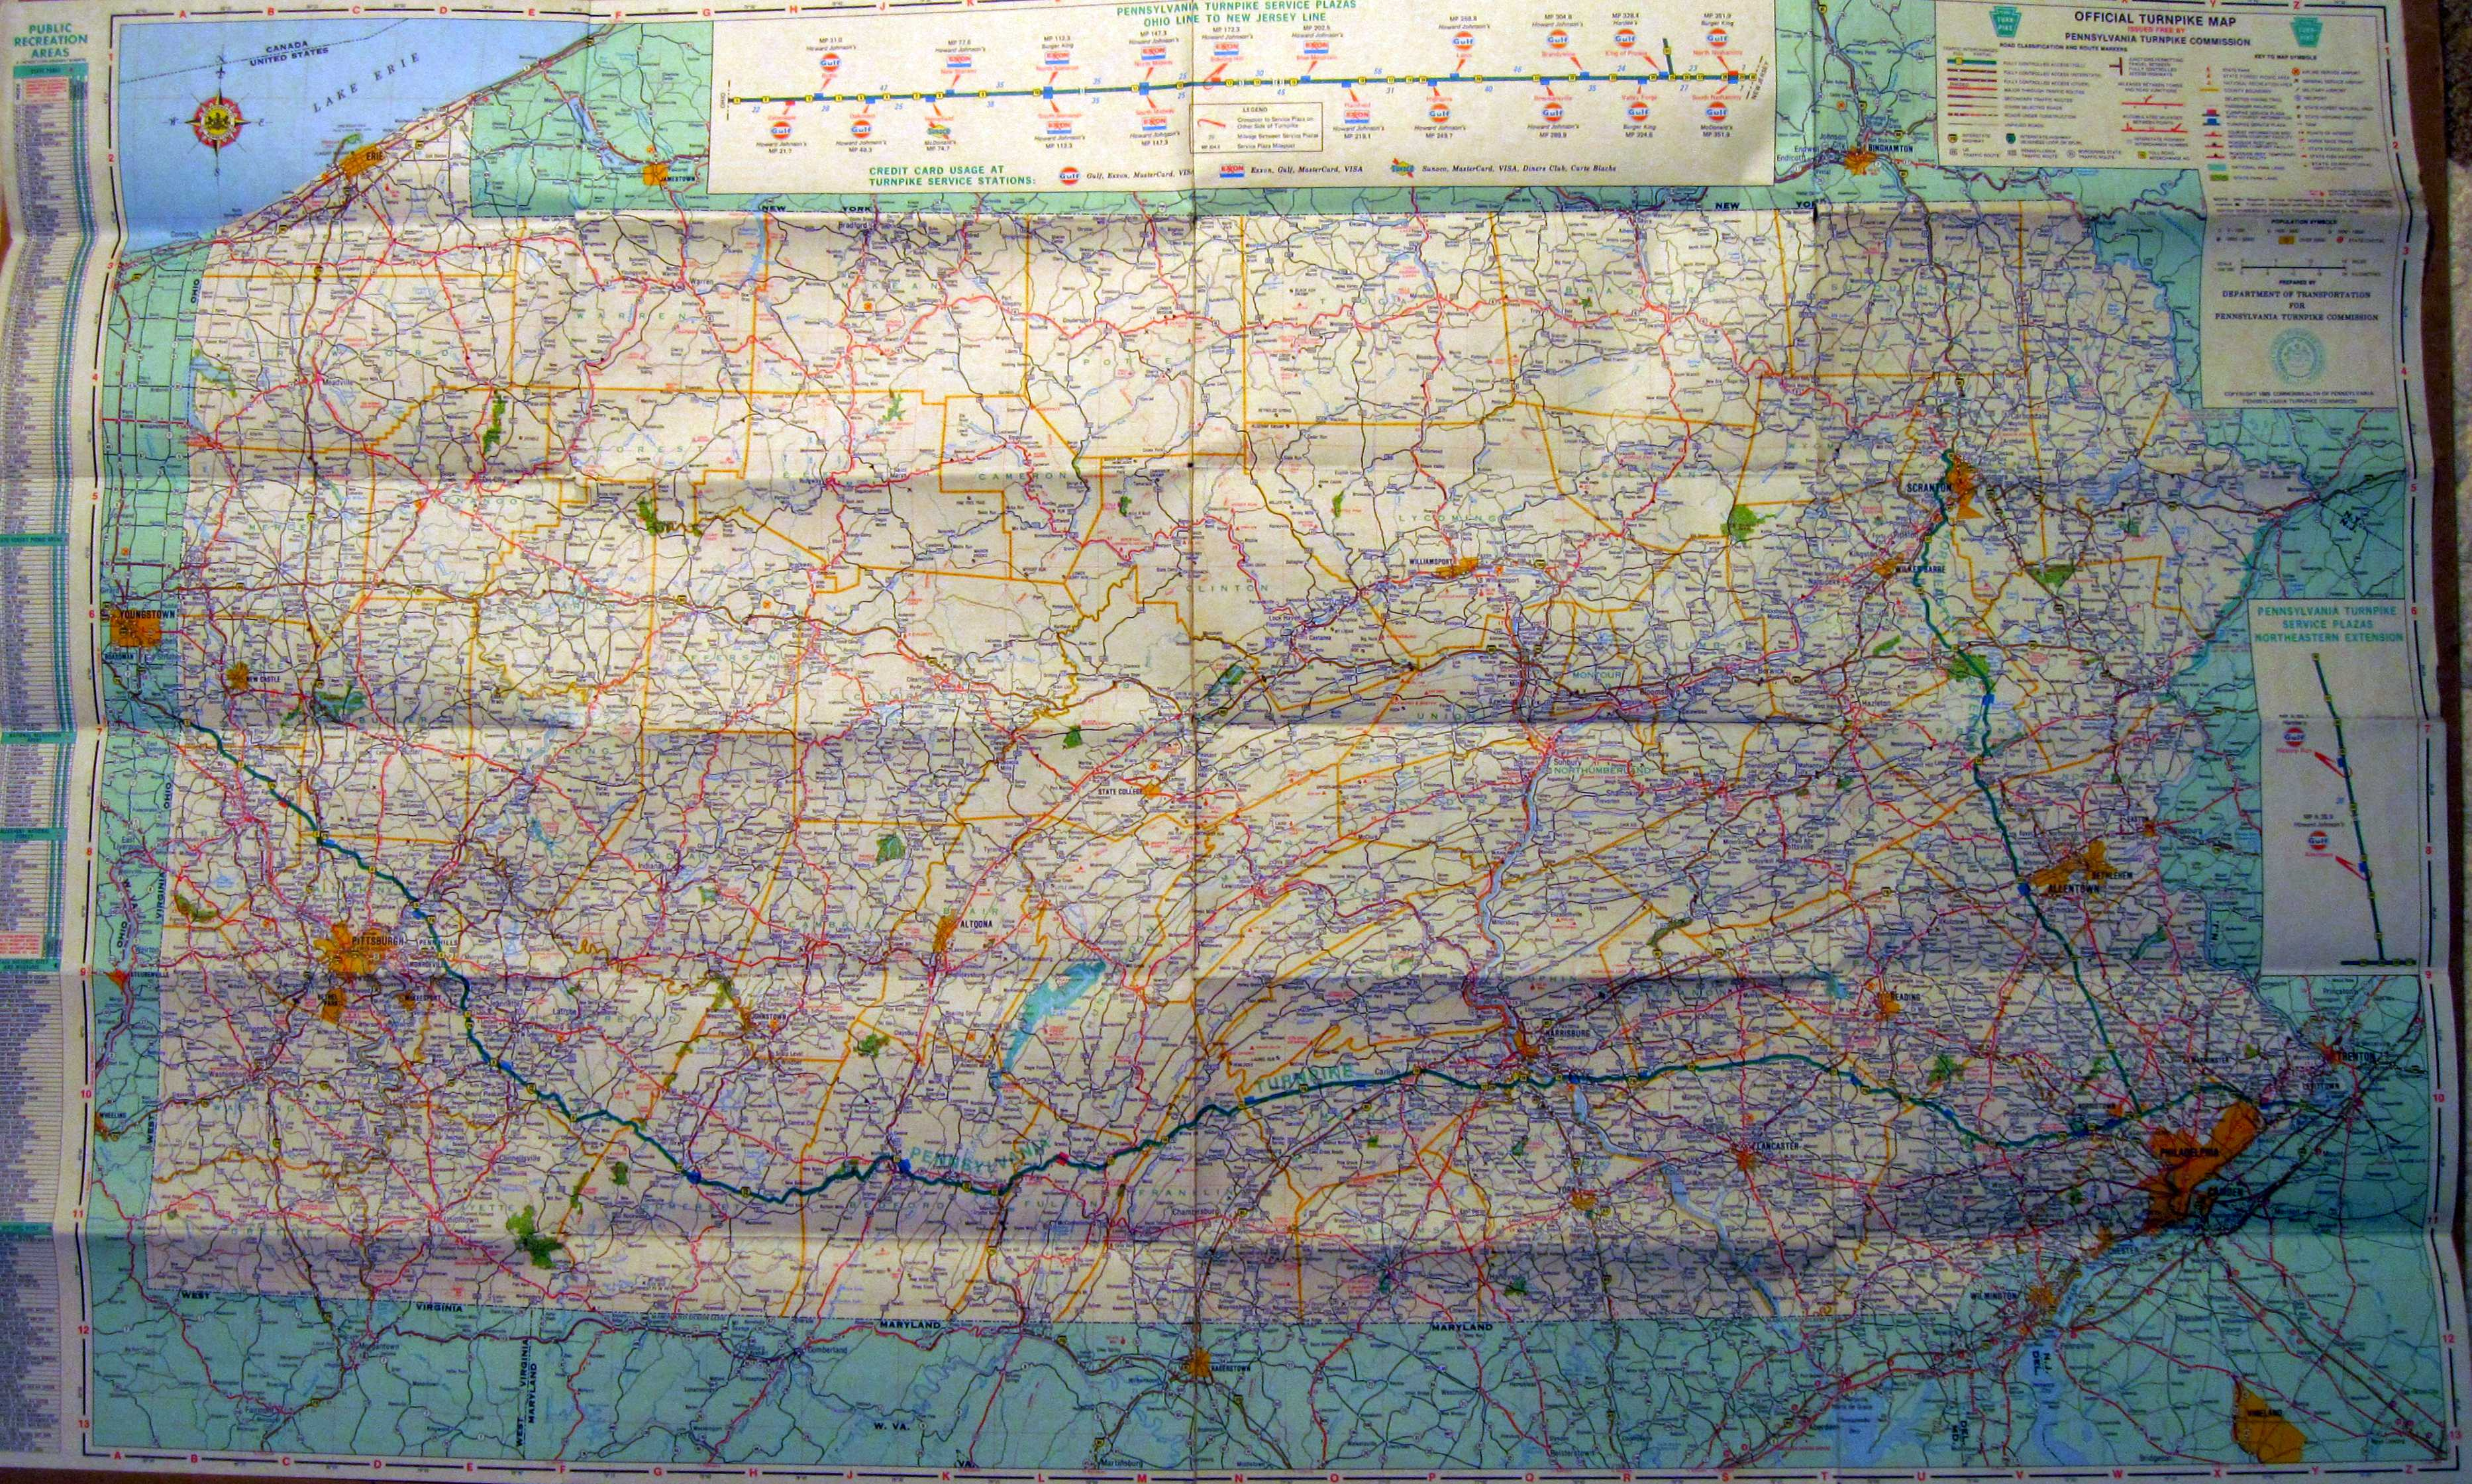 1980s Pennsylvania State Road Maps – State Road Maps